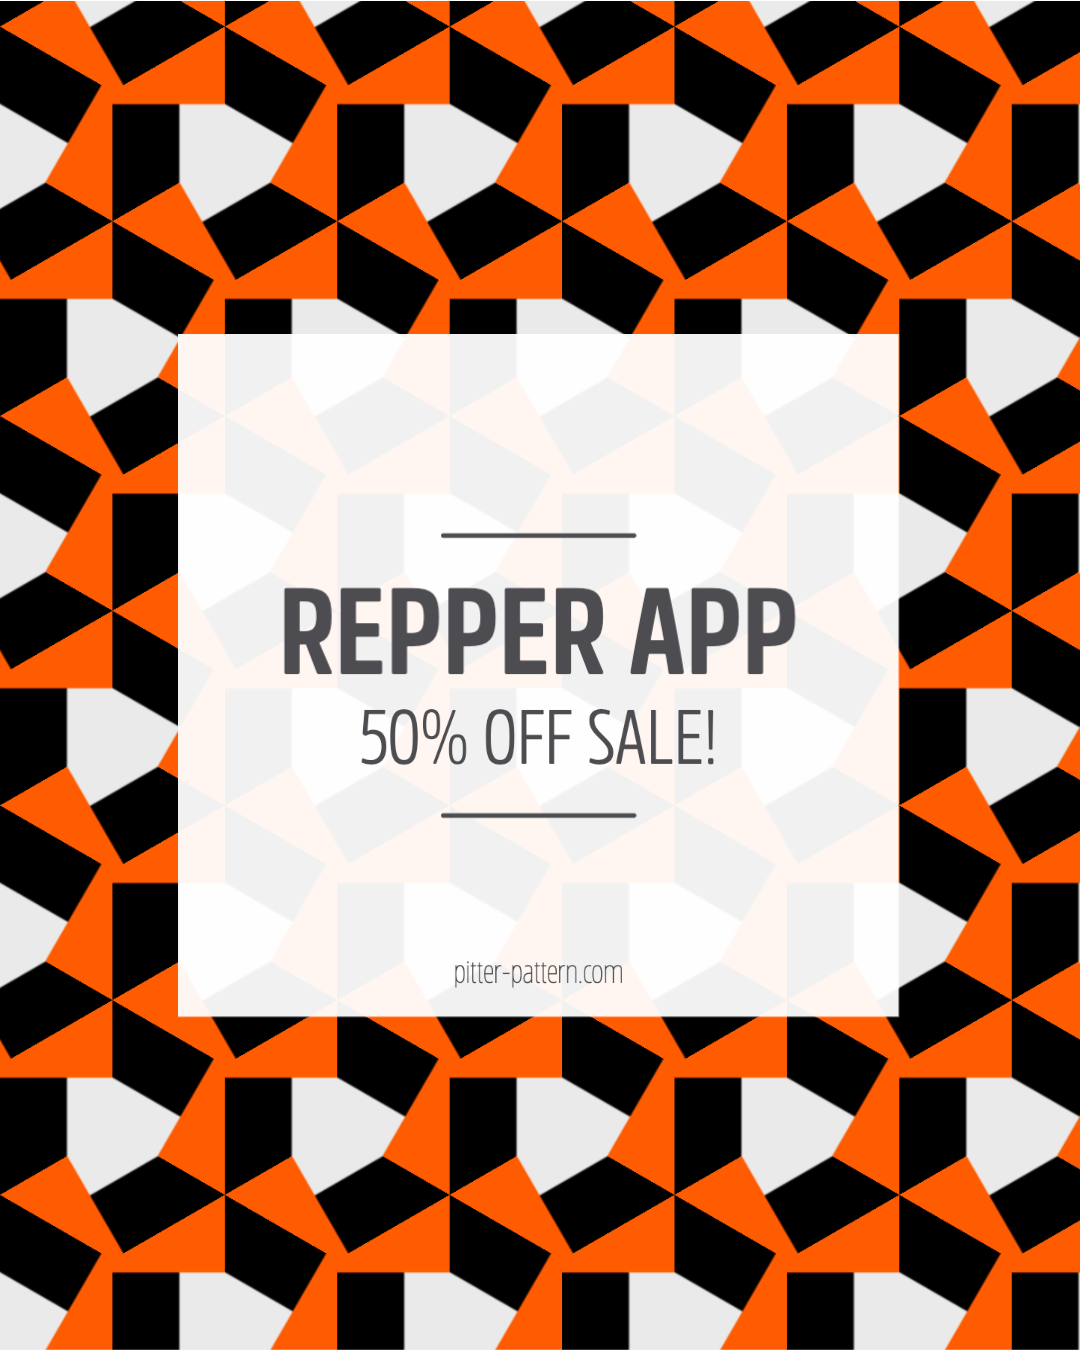 Repper App 50% off sale | Pitter Pattern